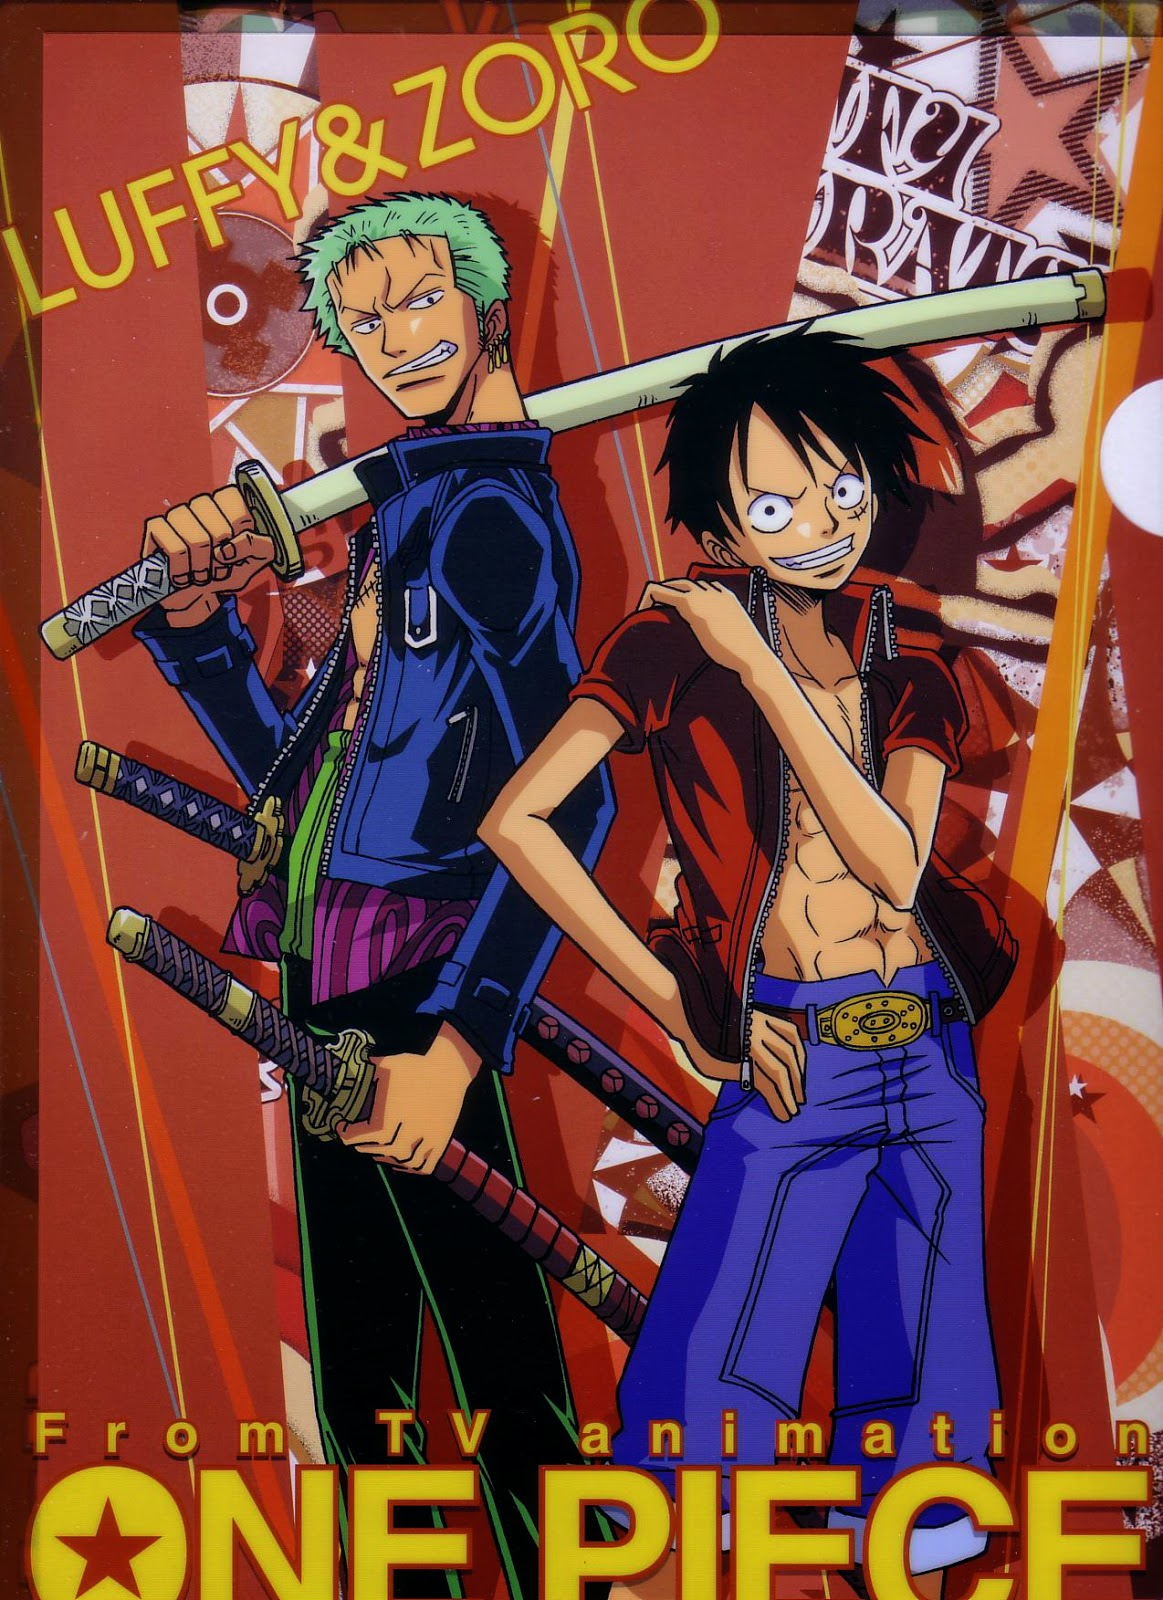 One+Piece+Zoro+and+Luffy+Desktop+Backgrounds+Free+Wallpaper